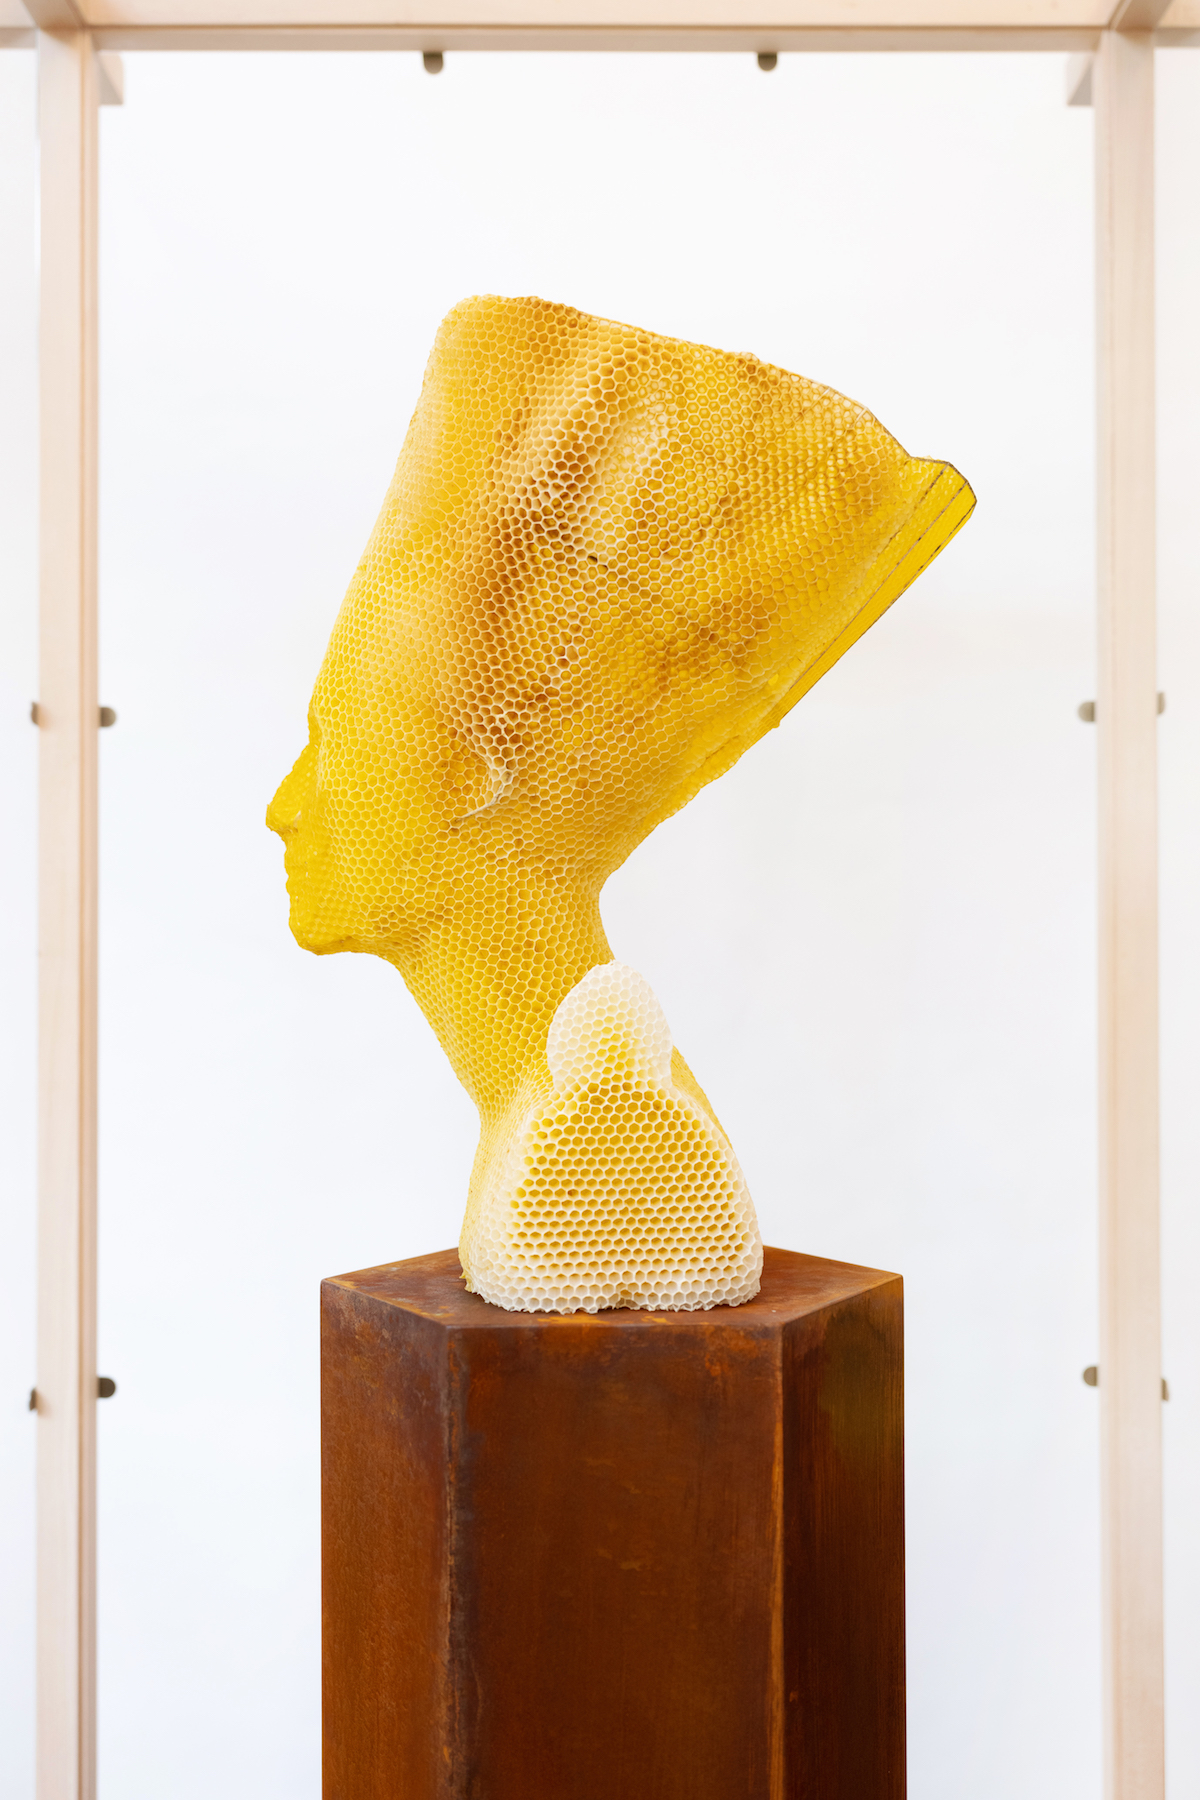 Nefertiti Bust Made Out of Beeswax and Honeycomb by Tomas Libertiny